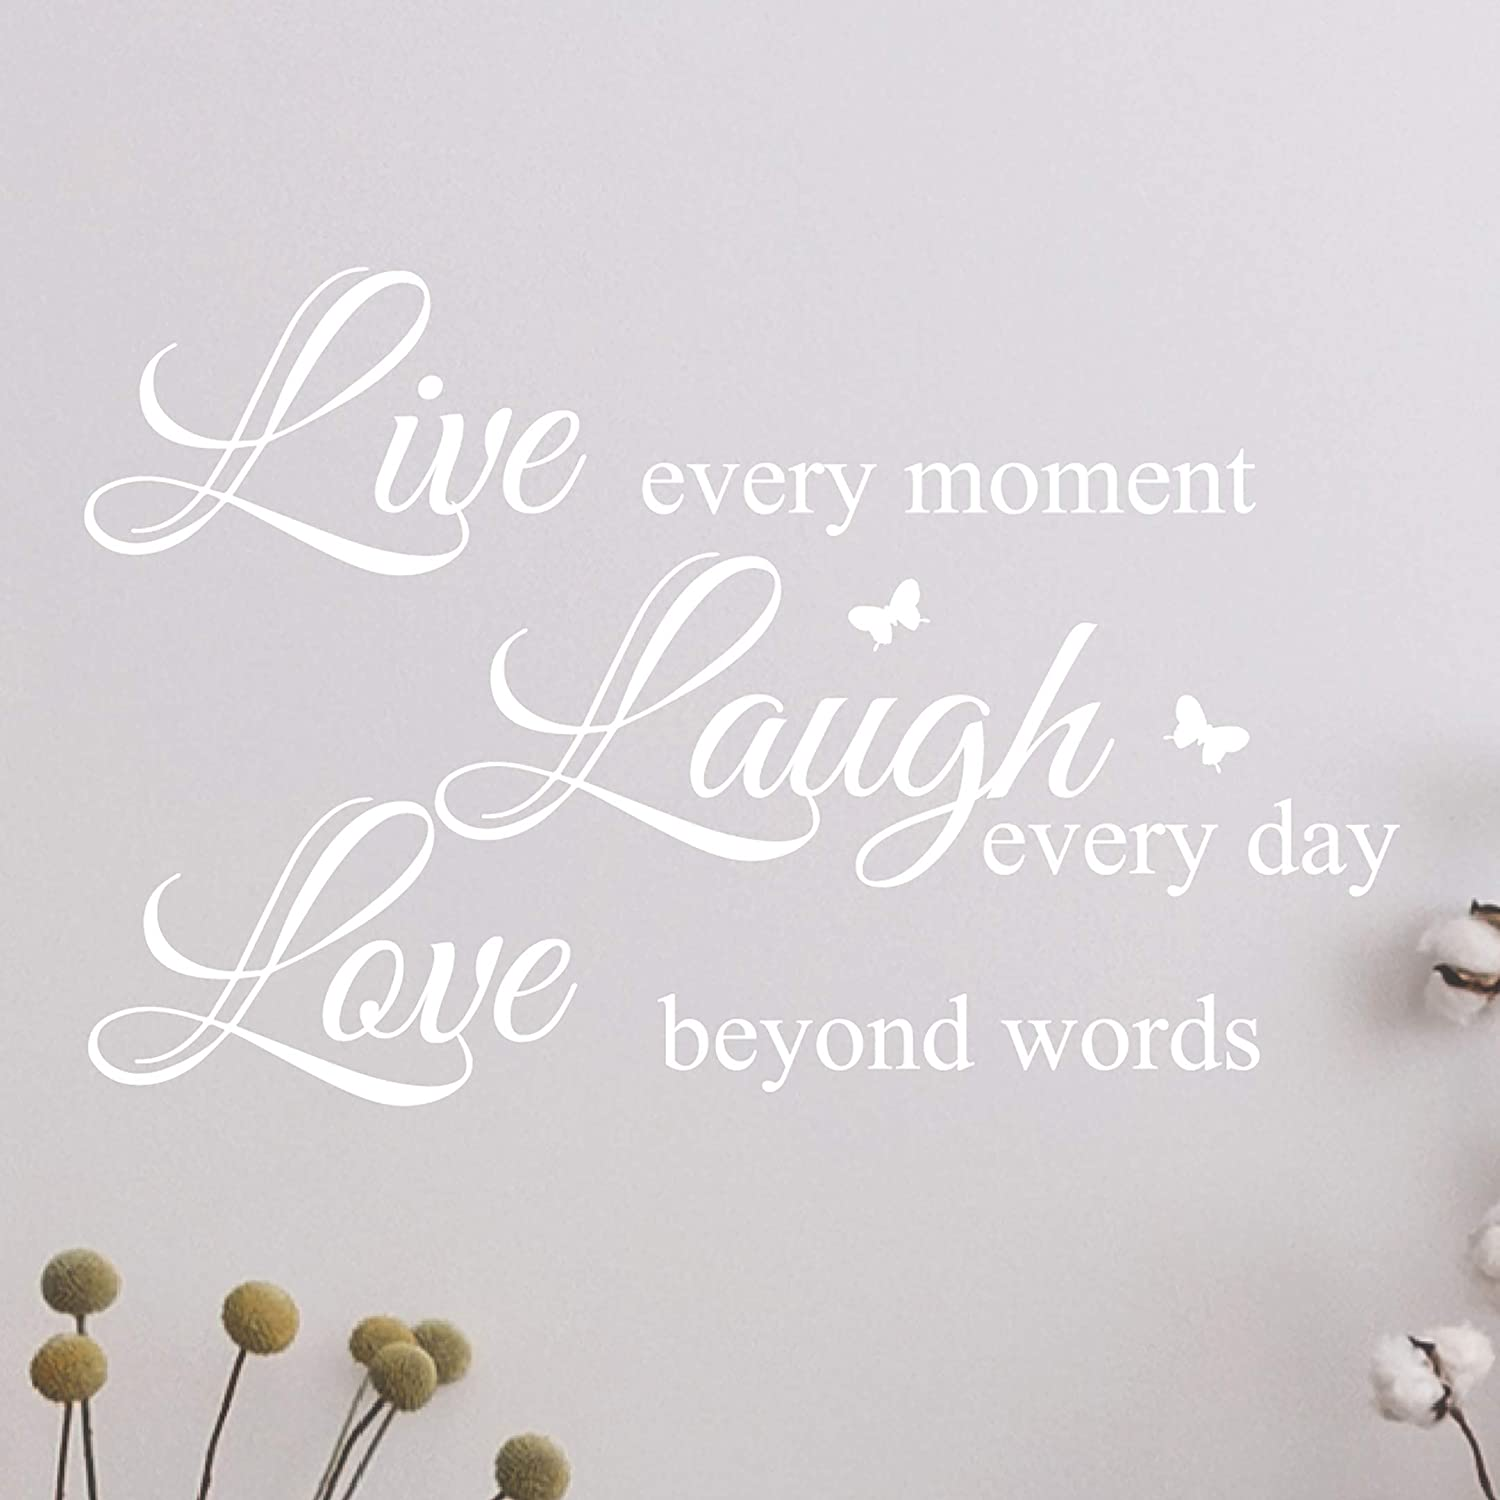 Live Every Moment, Laugh Every Day, Love Beyond Words, Wall Decal Motivational Sticker, Family Inspirational Wall Art Quotes #3081 (20